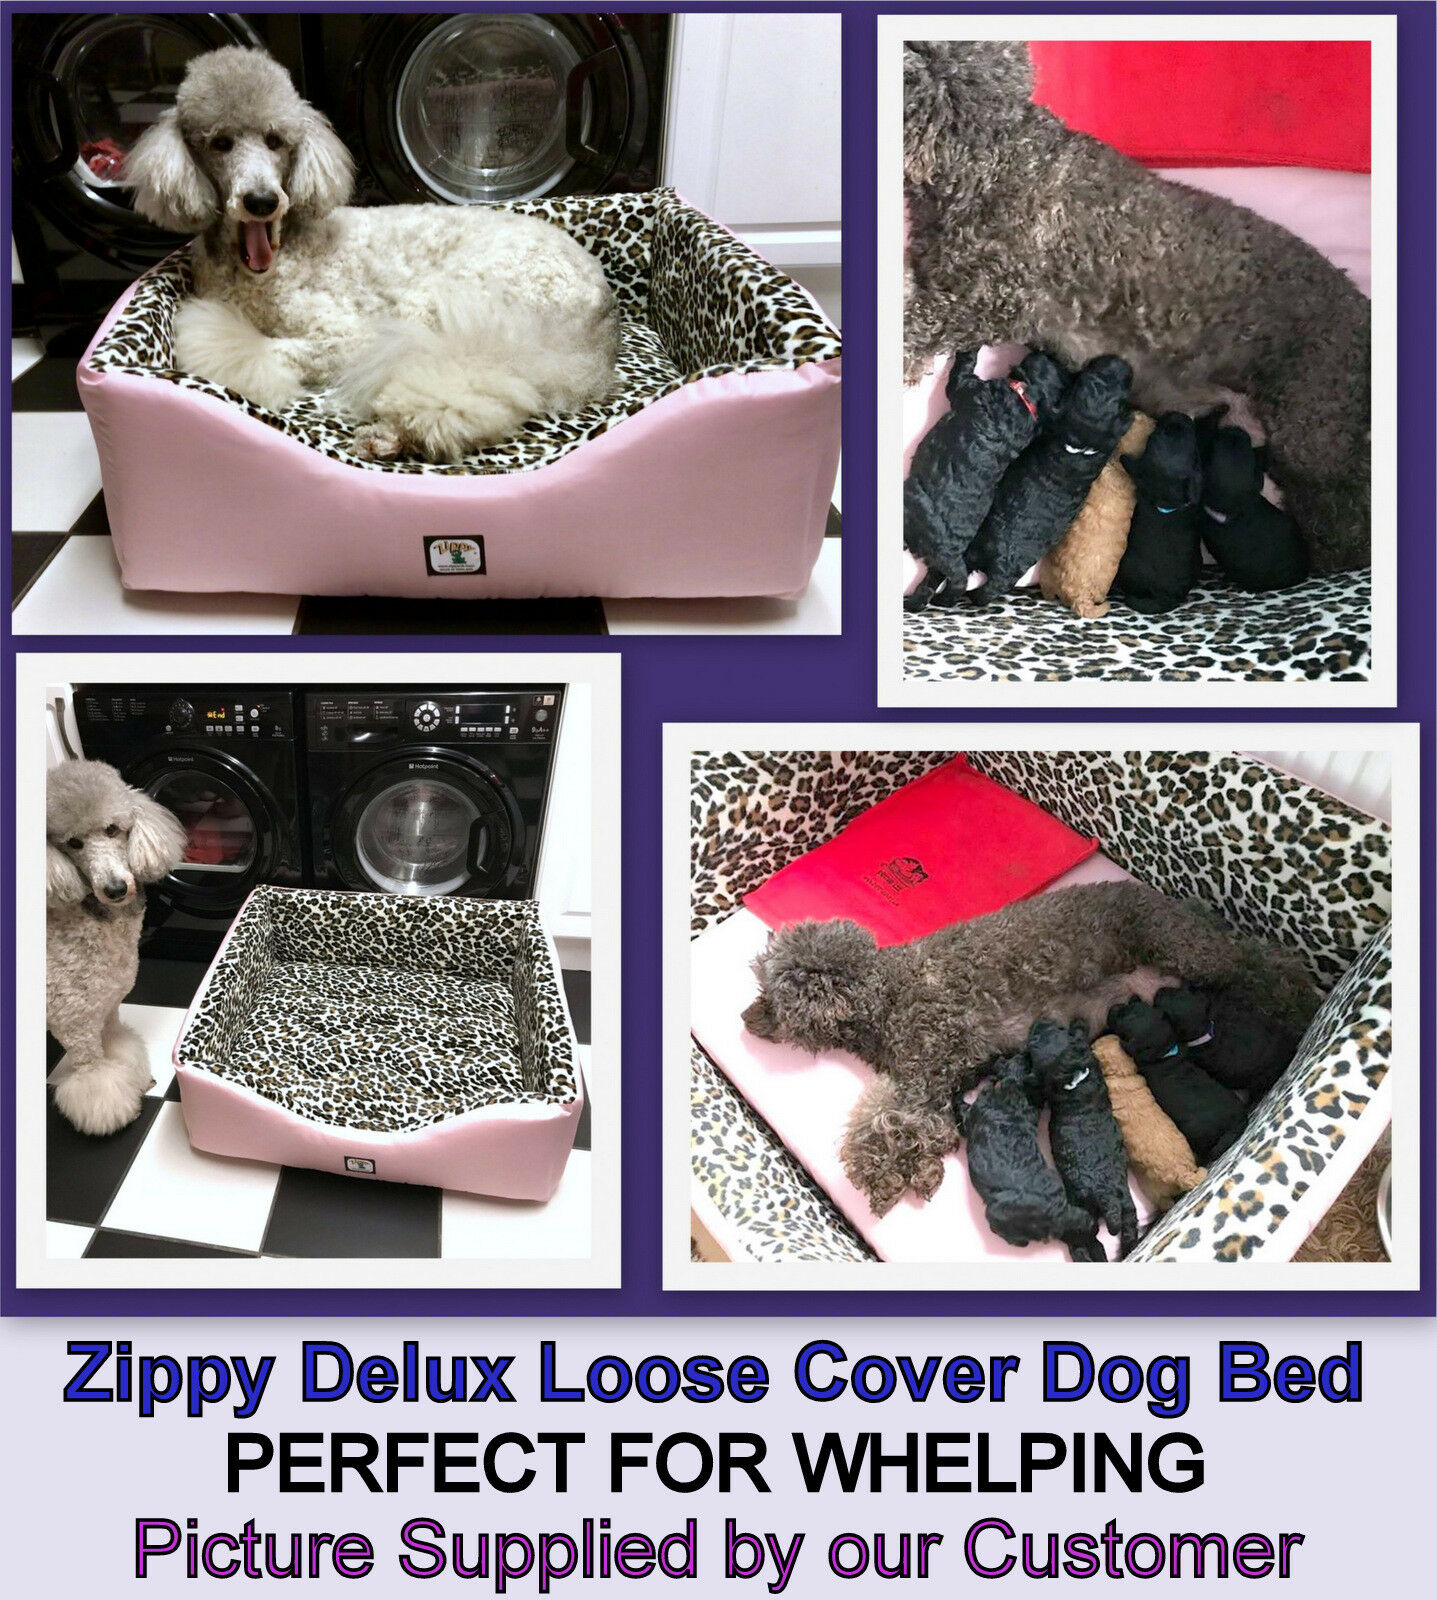 LARGE DELUX ZIPPY WHELPING DOG BED WATERPROOF OUTER SHELL & LEOPARD INTERIOR